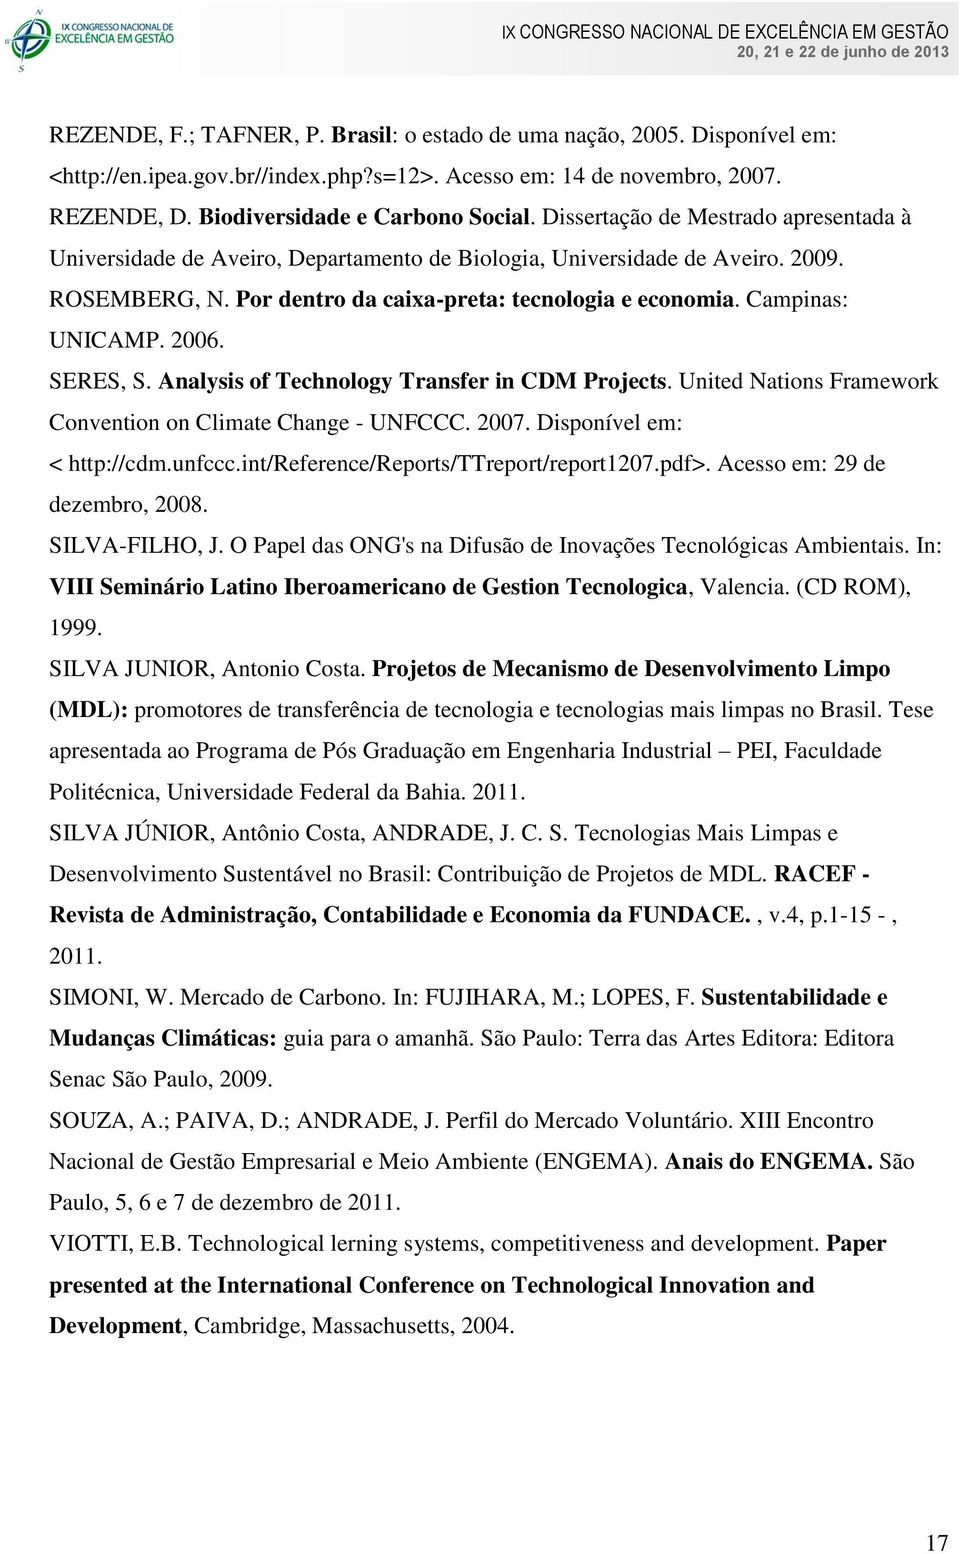 2006. SERES, S. Analysis of Technology Transfer in CDM Projects. United Nations Framework Convention on Climate Change - UNFCCC. 2007. Disponível em: < http://cdm.unfccc.